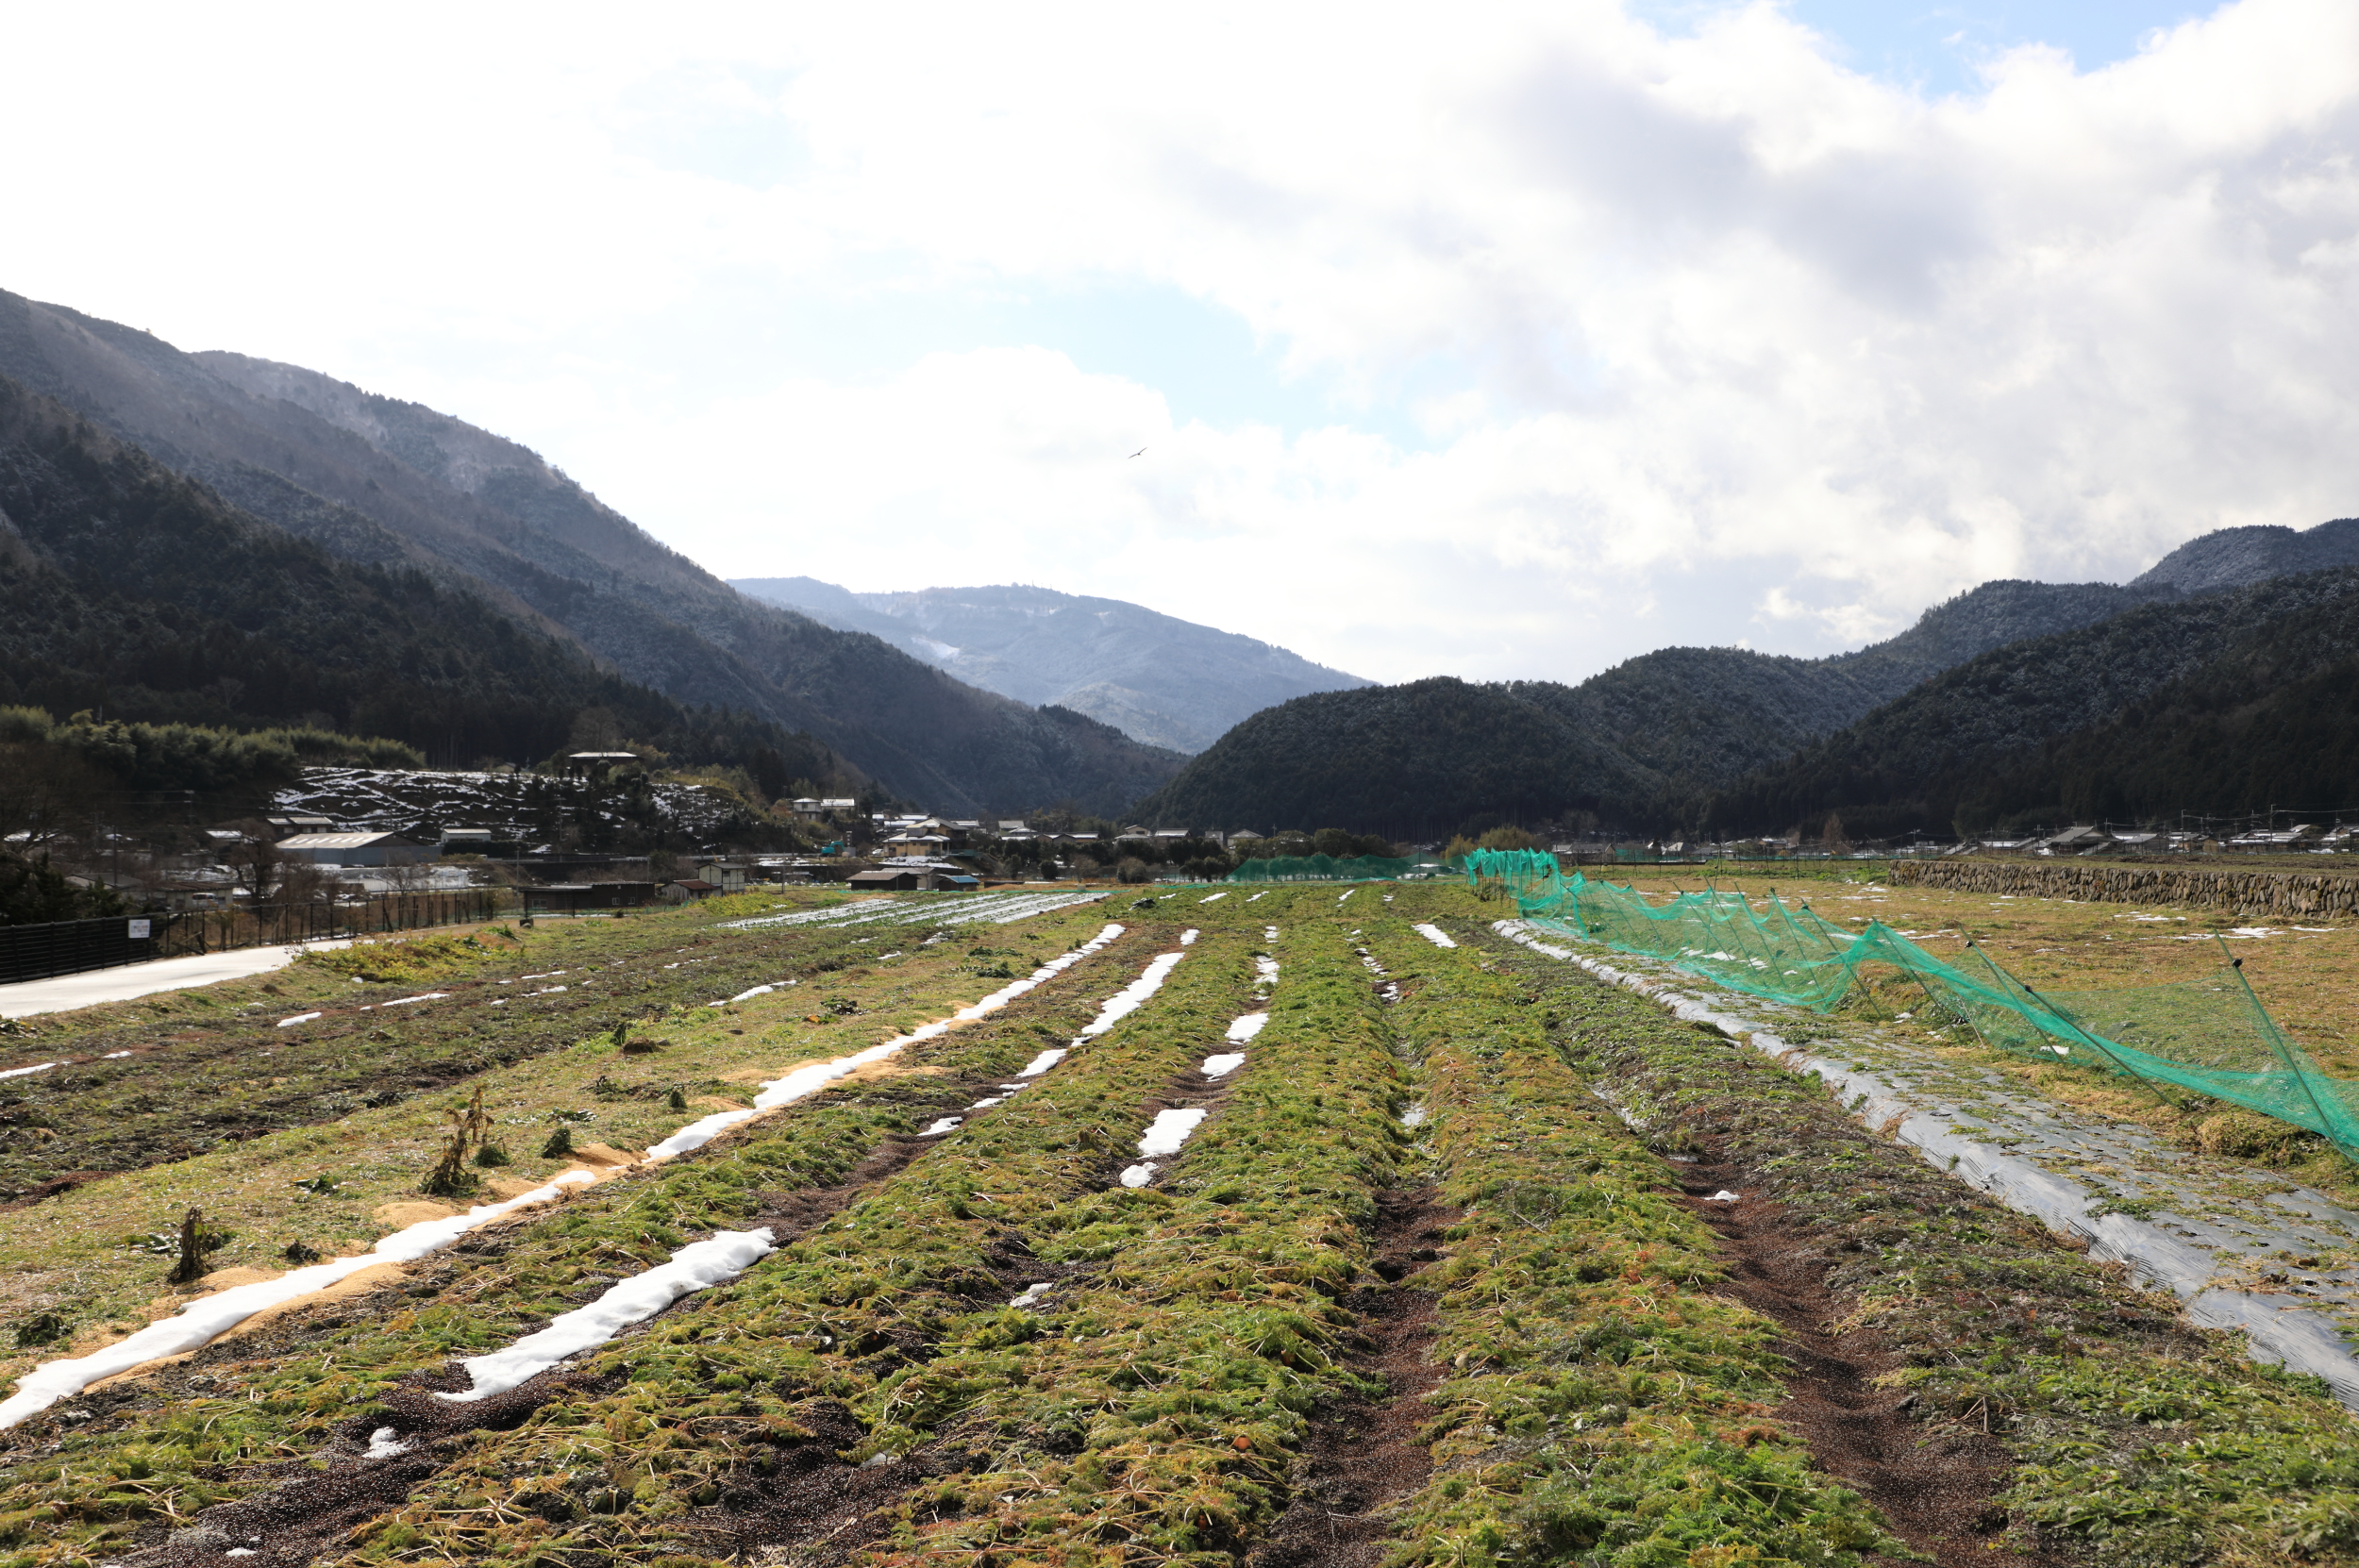 Ohara's reputation is based on vegetables, which are grown everywhere in the valley, and also the pickles that are made from them.